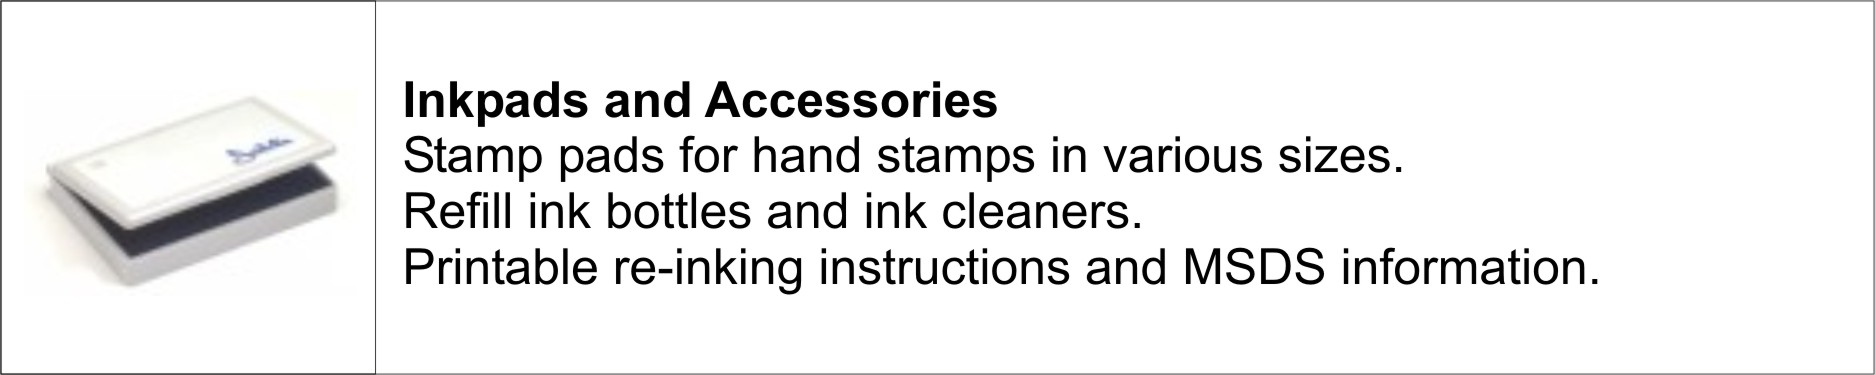 Inkpads and Accessories